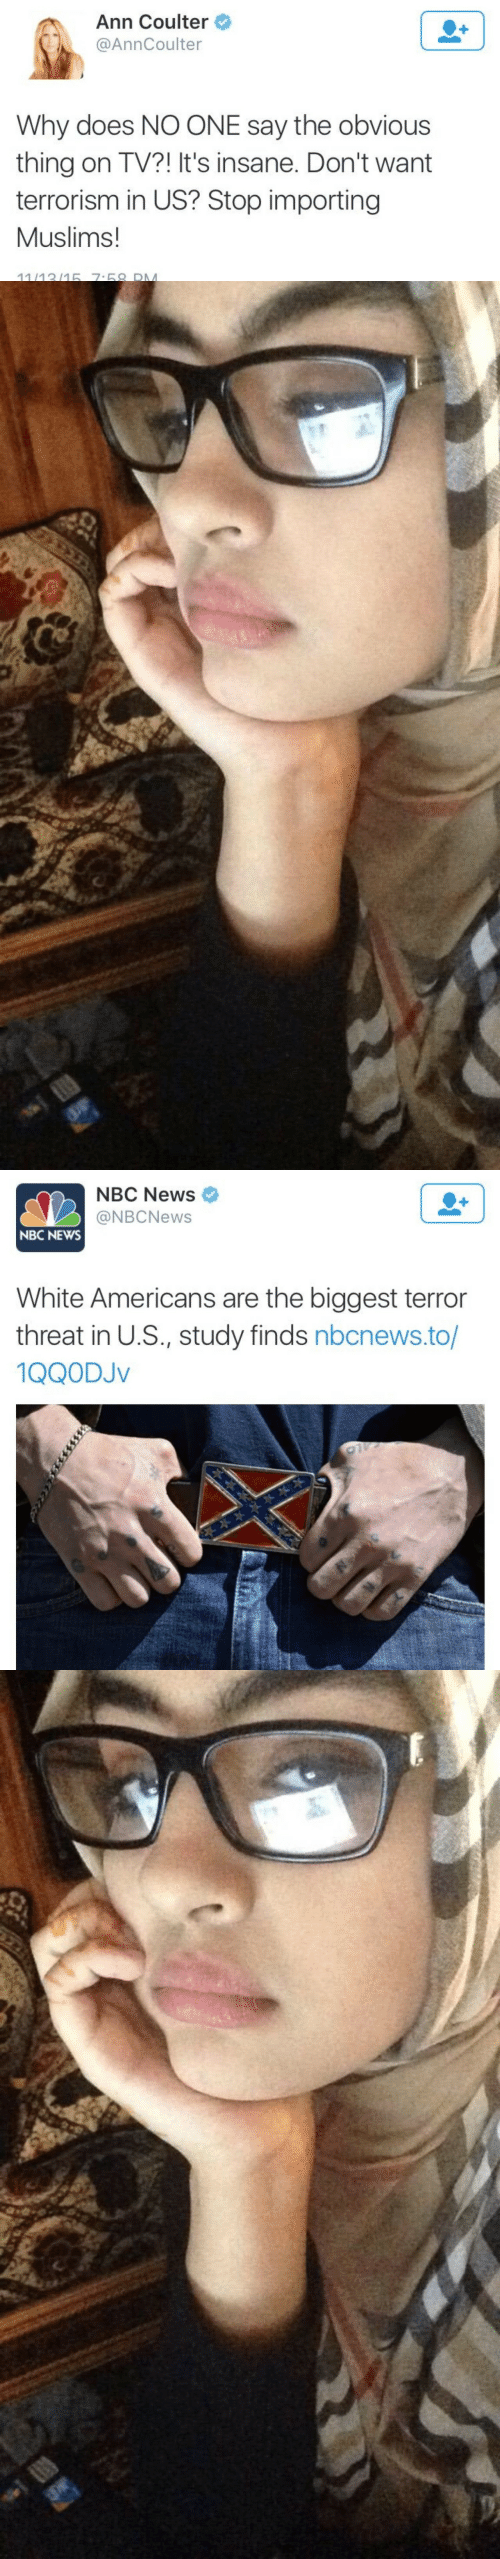 Nbcnews: Ann Coulter  @AnnCoulter  Why does NO ONE say the obvious  thing on TV?! It's insane. Don't want  terrorism in US? Stop importing  Muslims!  11/1315 7-68 DM   NBC News  @NBCNews  NBC NEWS  White Americans are the biggest terror  threat in U.S., study finds nbcnews.to/  1QQODJv